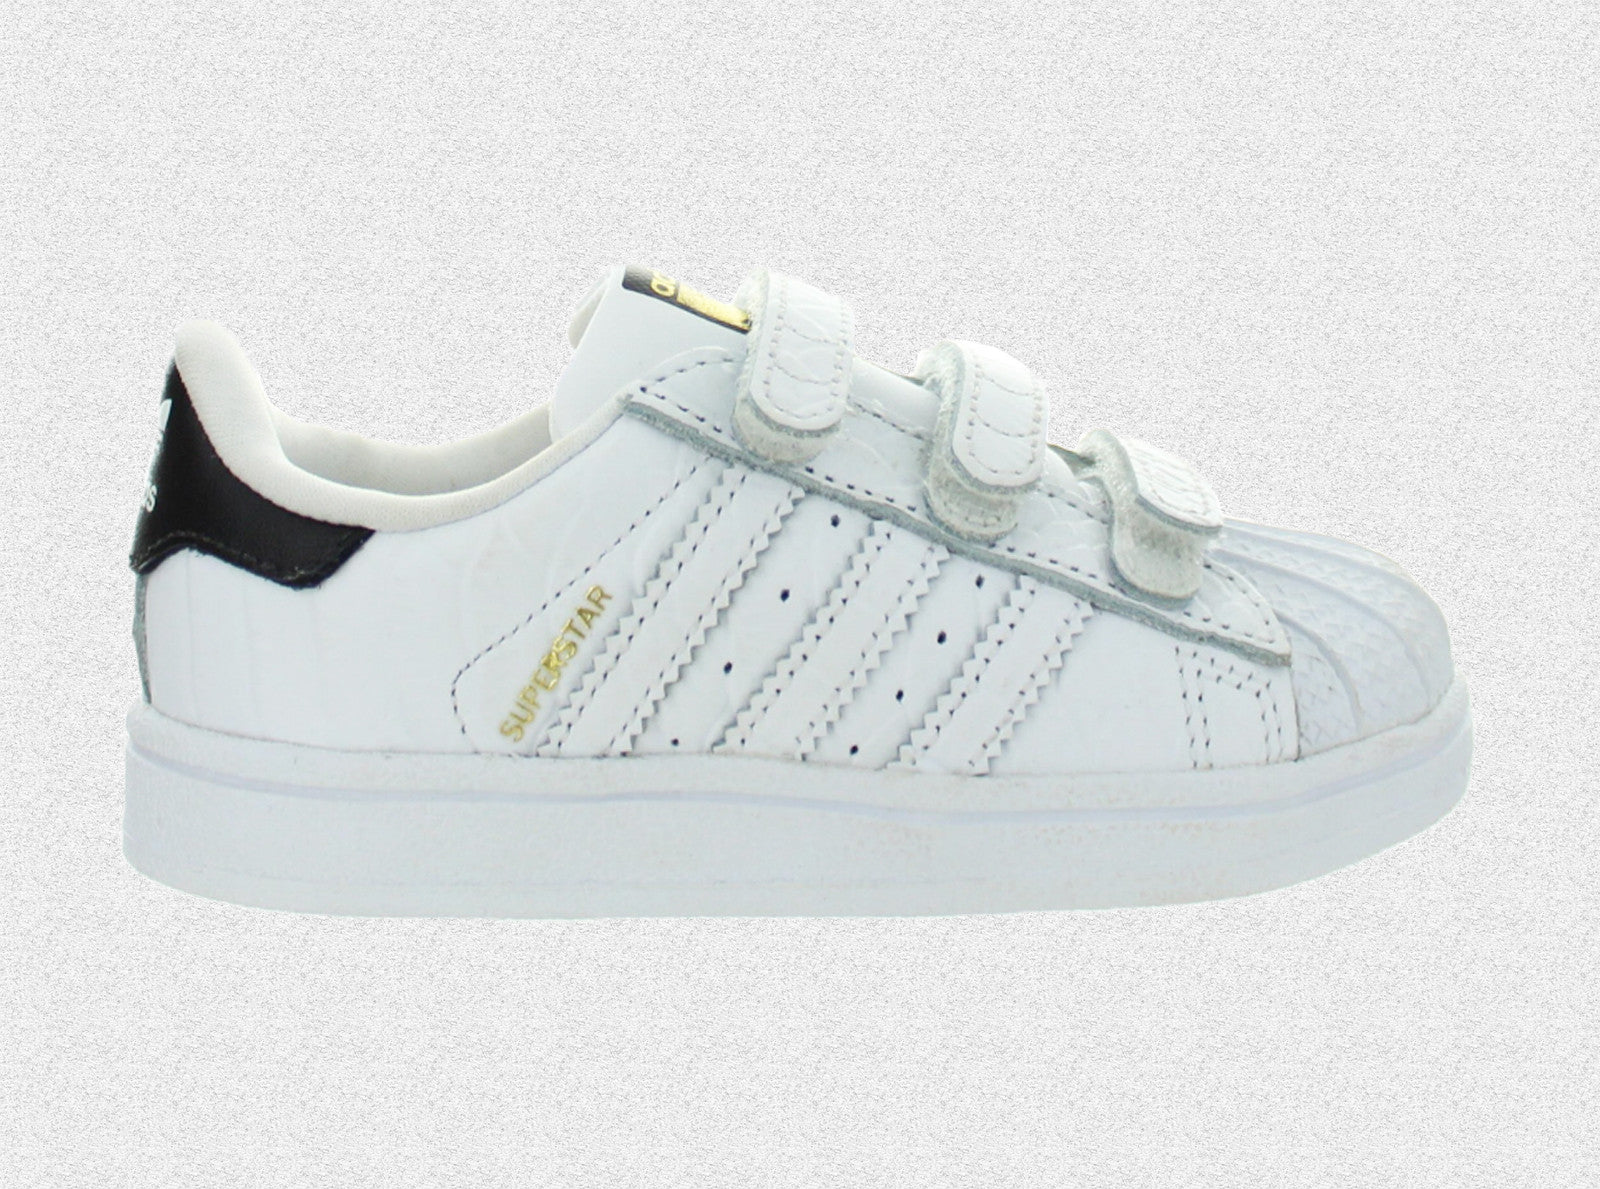 Details about Shoes adidas Superstar Cf I White Kids